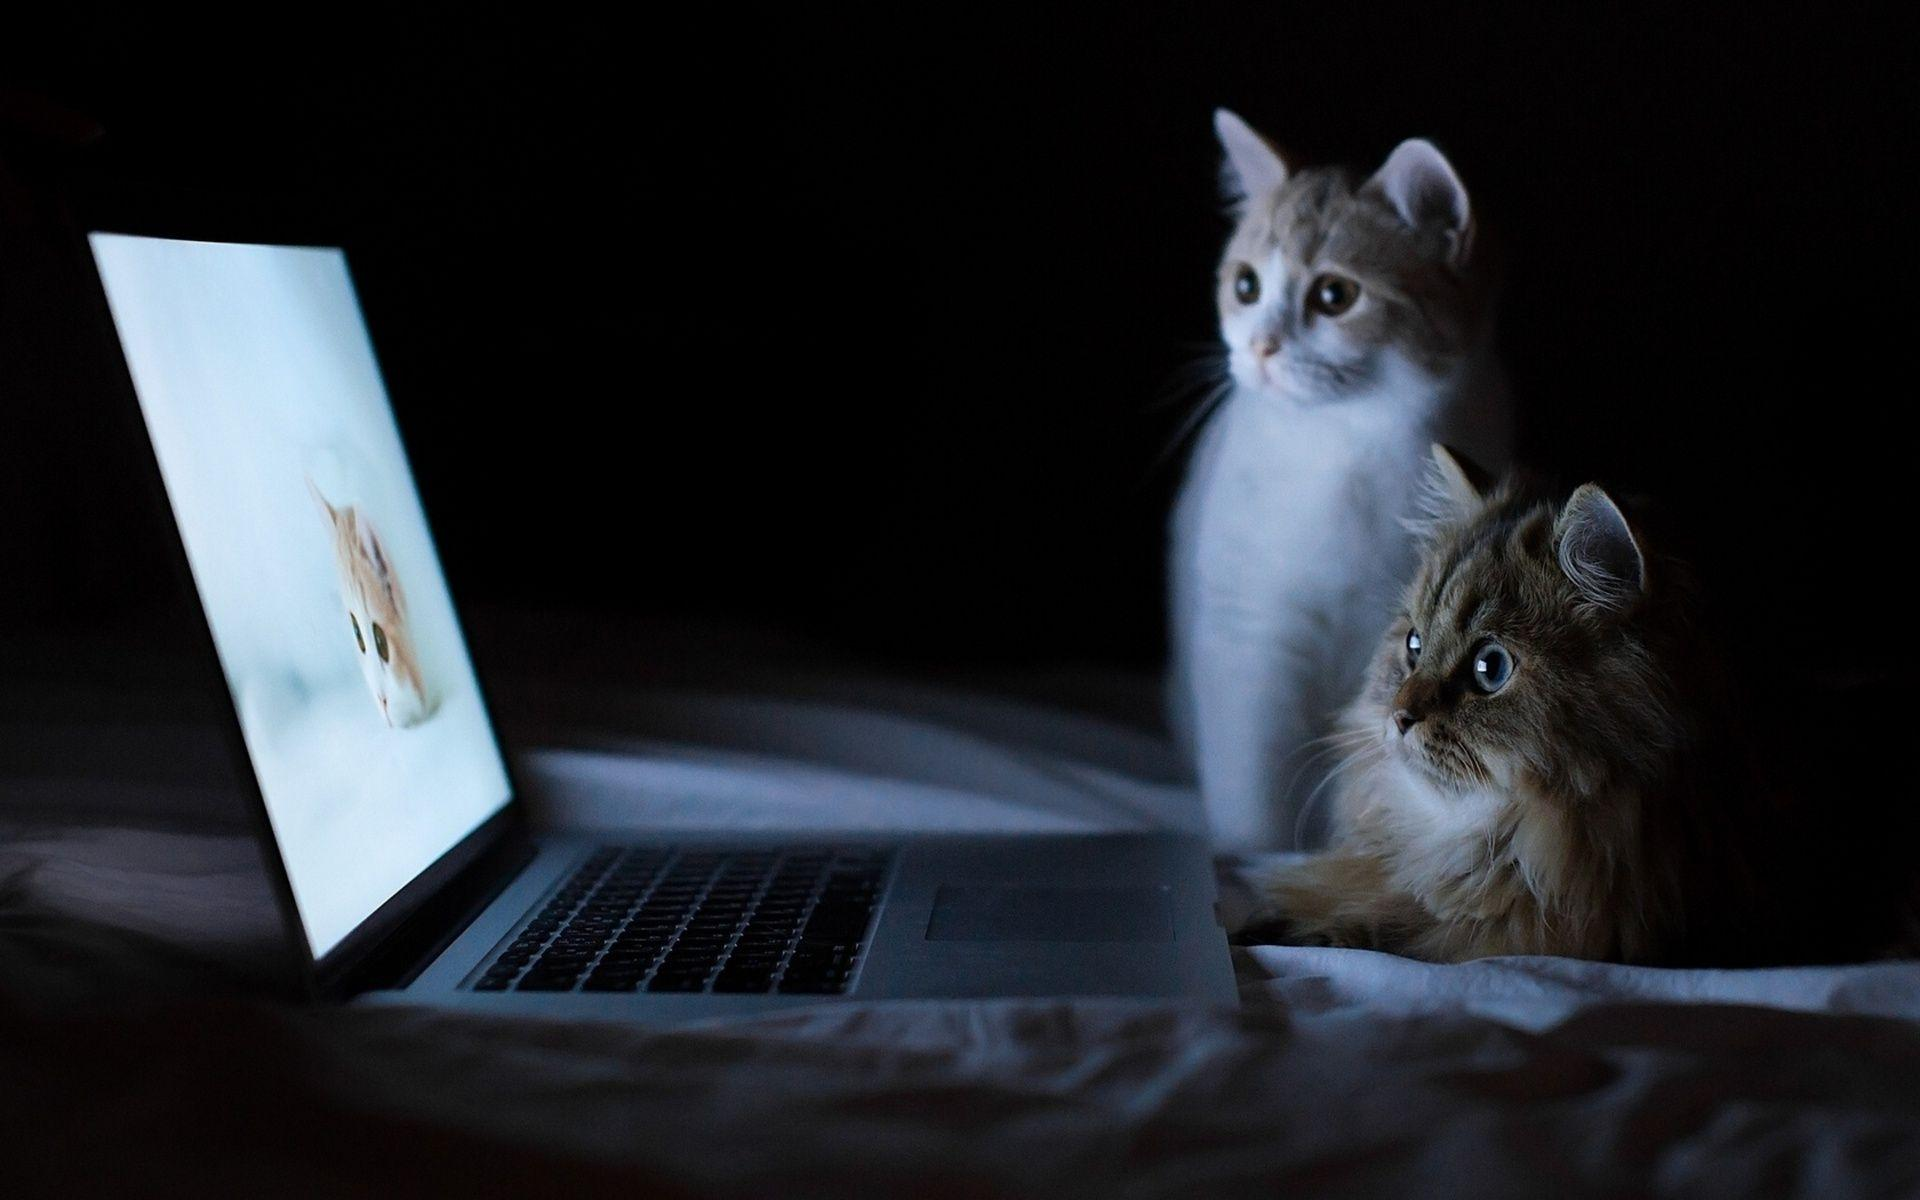 Full Hd Wallpapers Of Cute Cats For Dell Laptop Wallpaper Cave